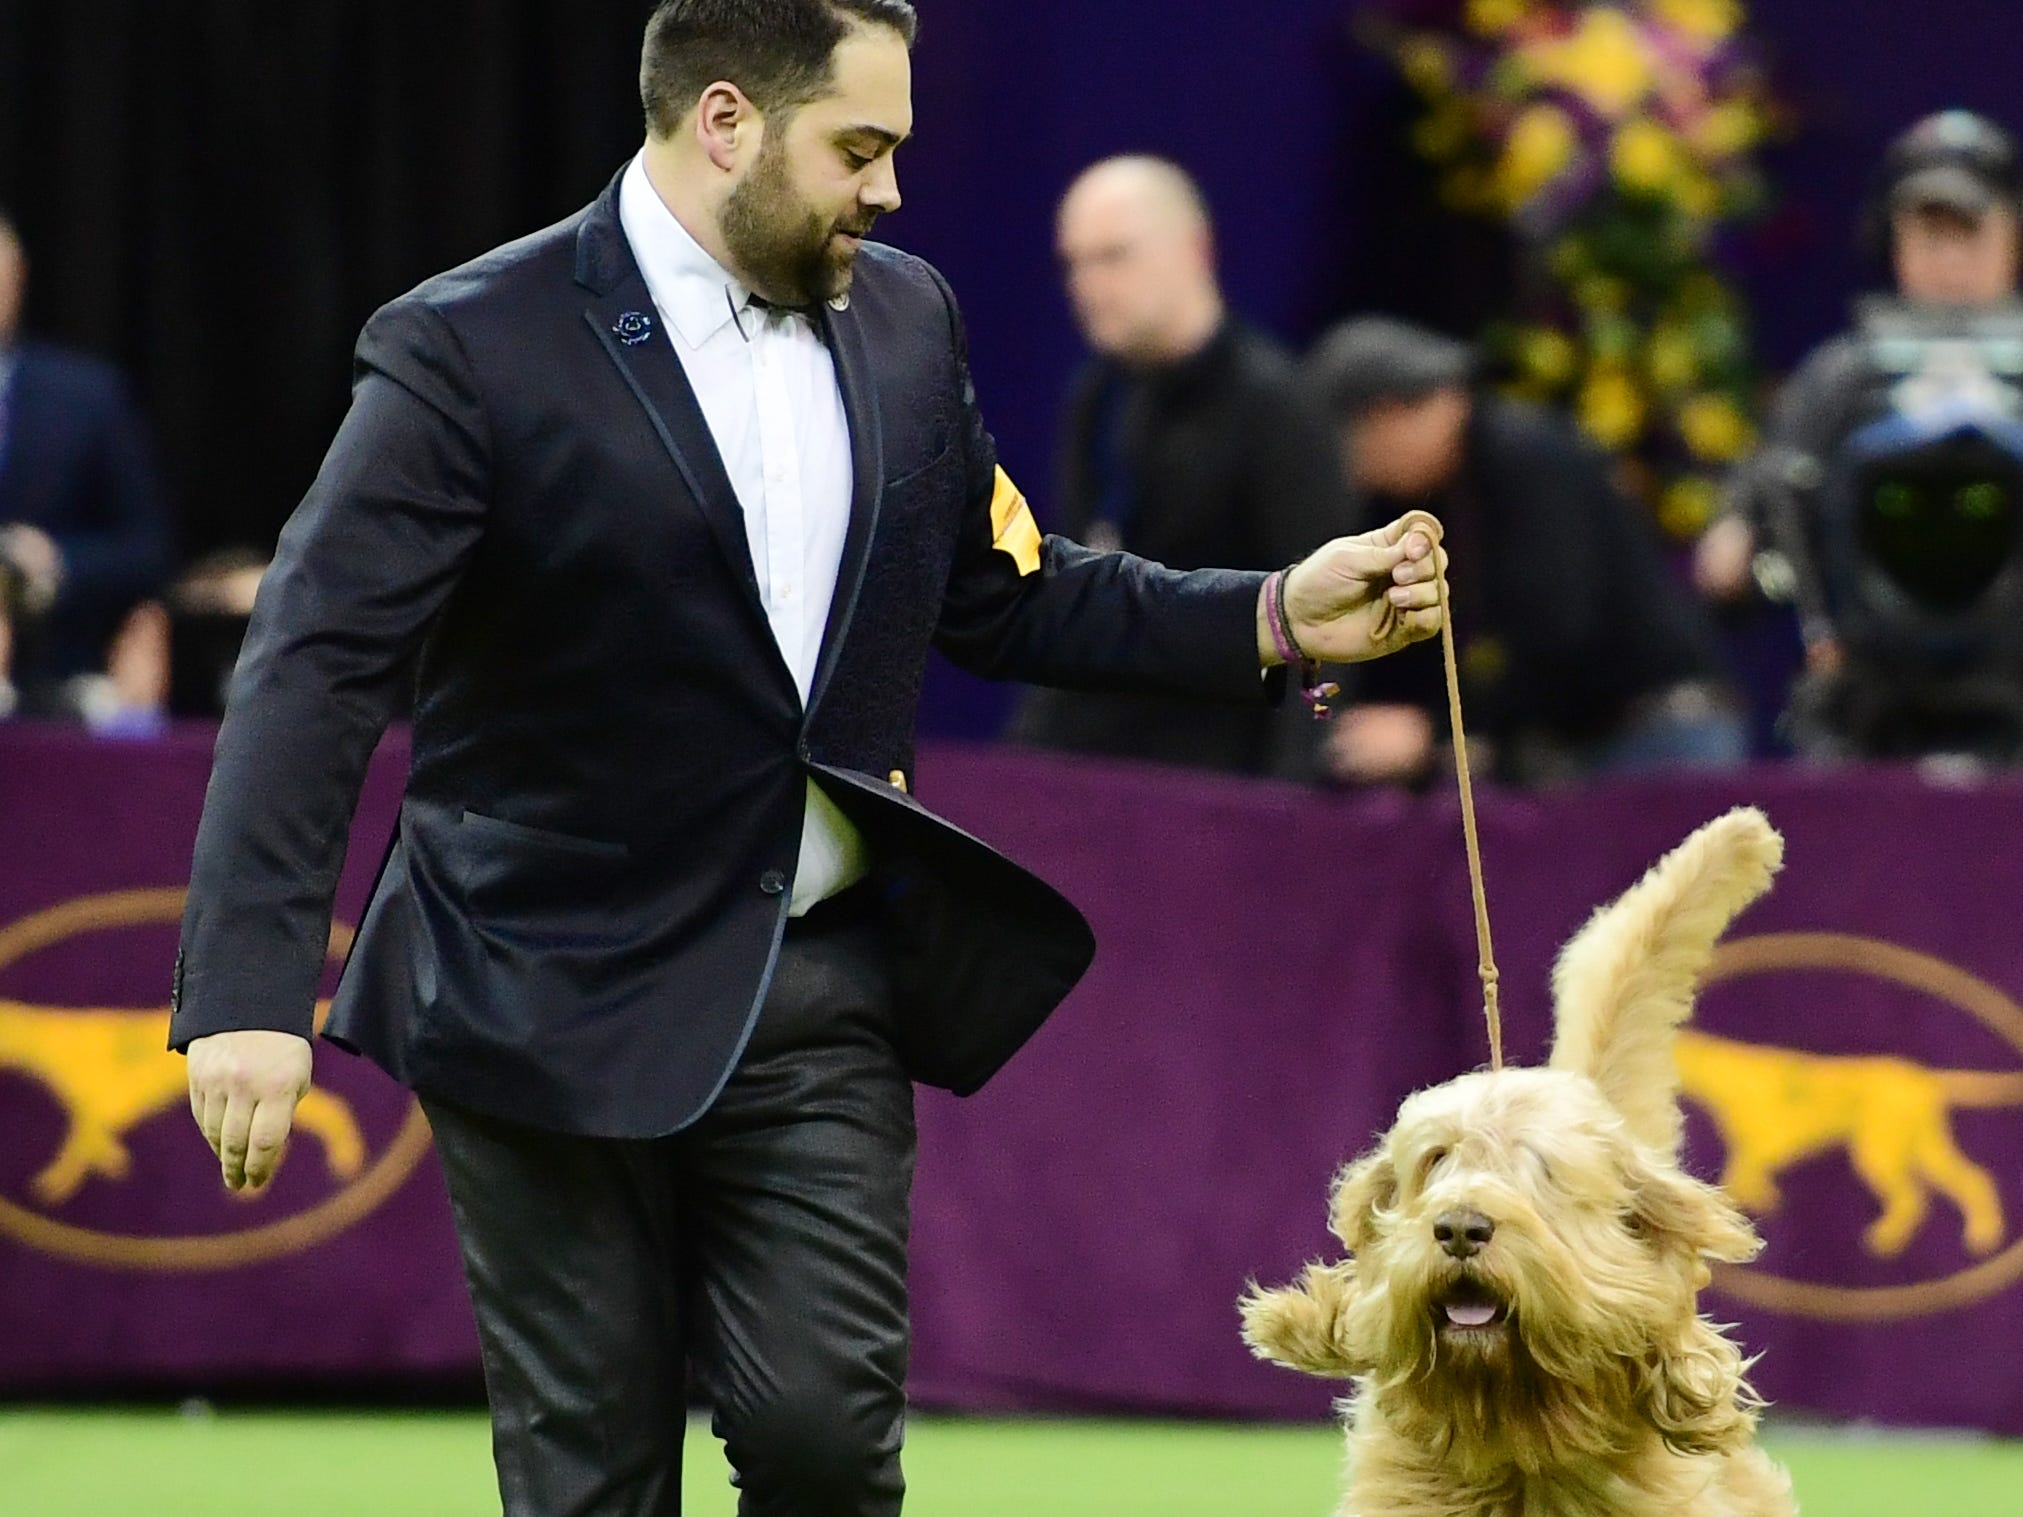 The Otterhound and trainer during the Hound Group judging at the 143rd Westminster Kennel Club Dog Show.